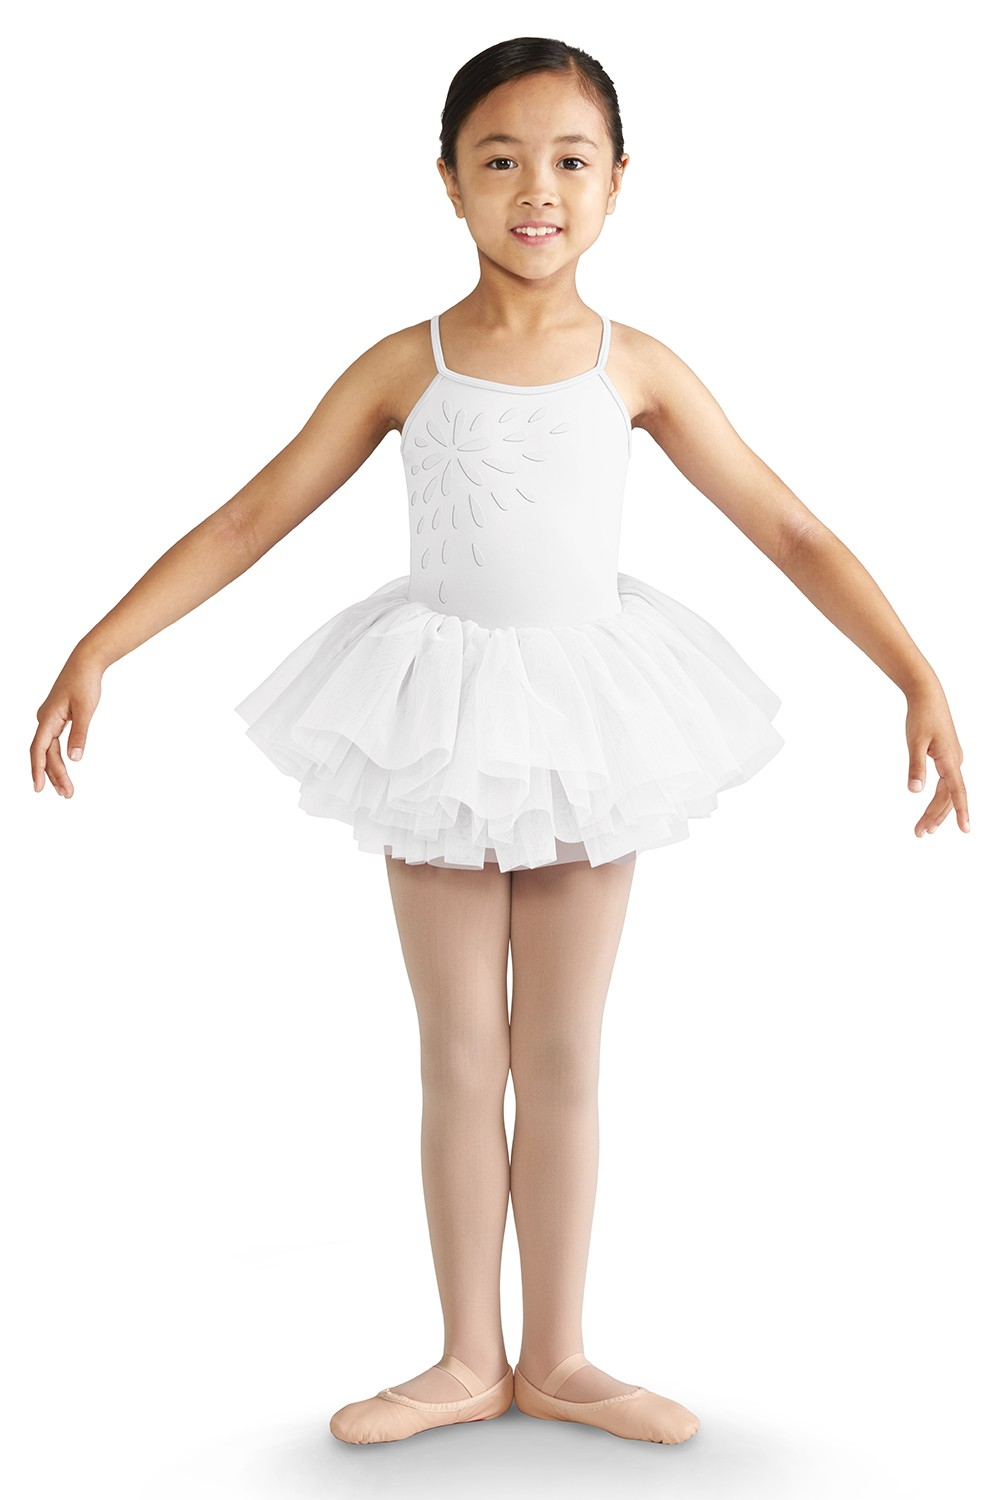 Scoop Back Camisole Tutu Dress Children's Dance Leotards